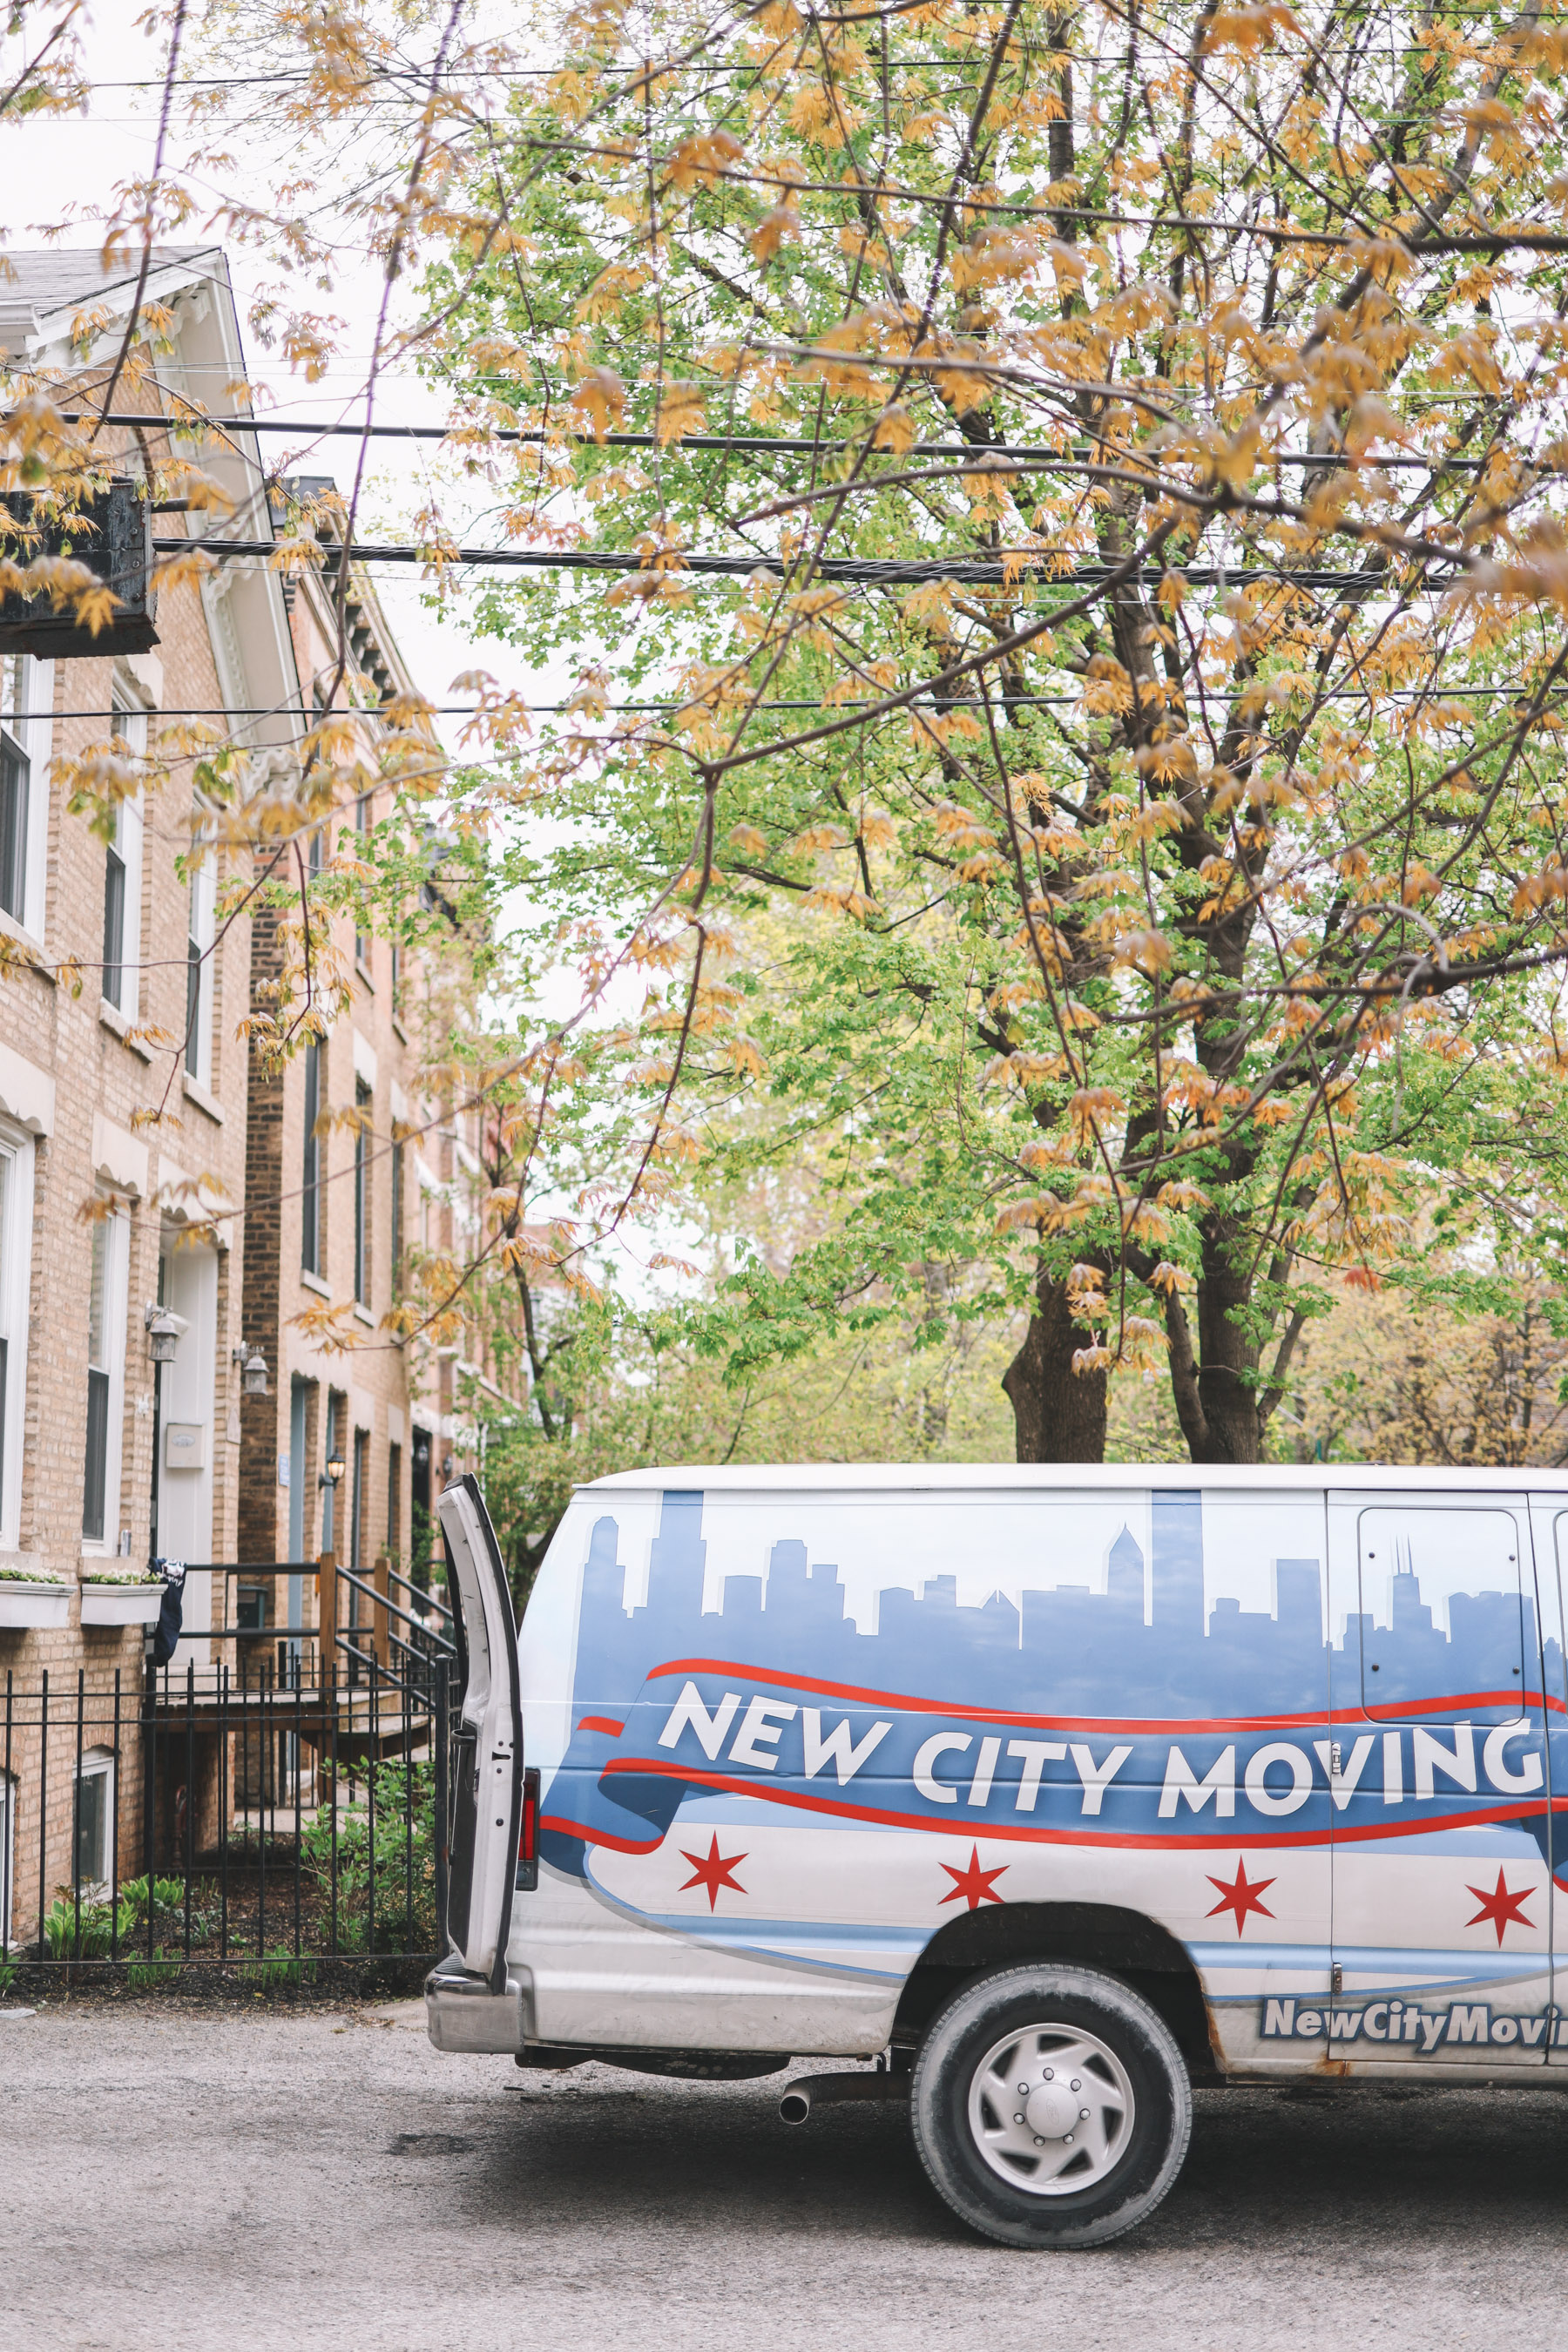 New City Moving | Kelly in the City